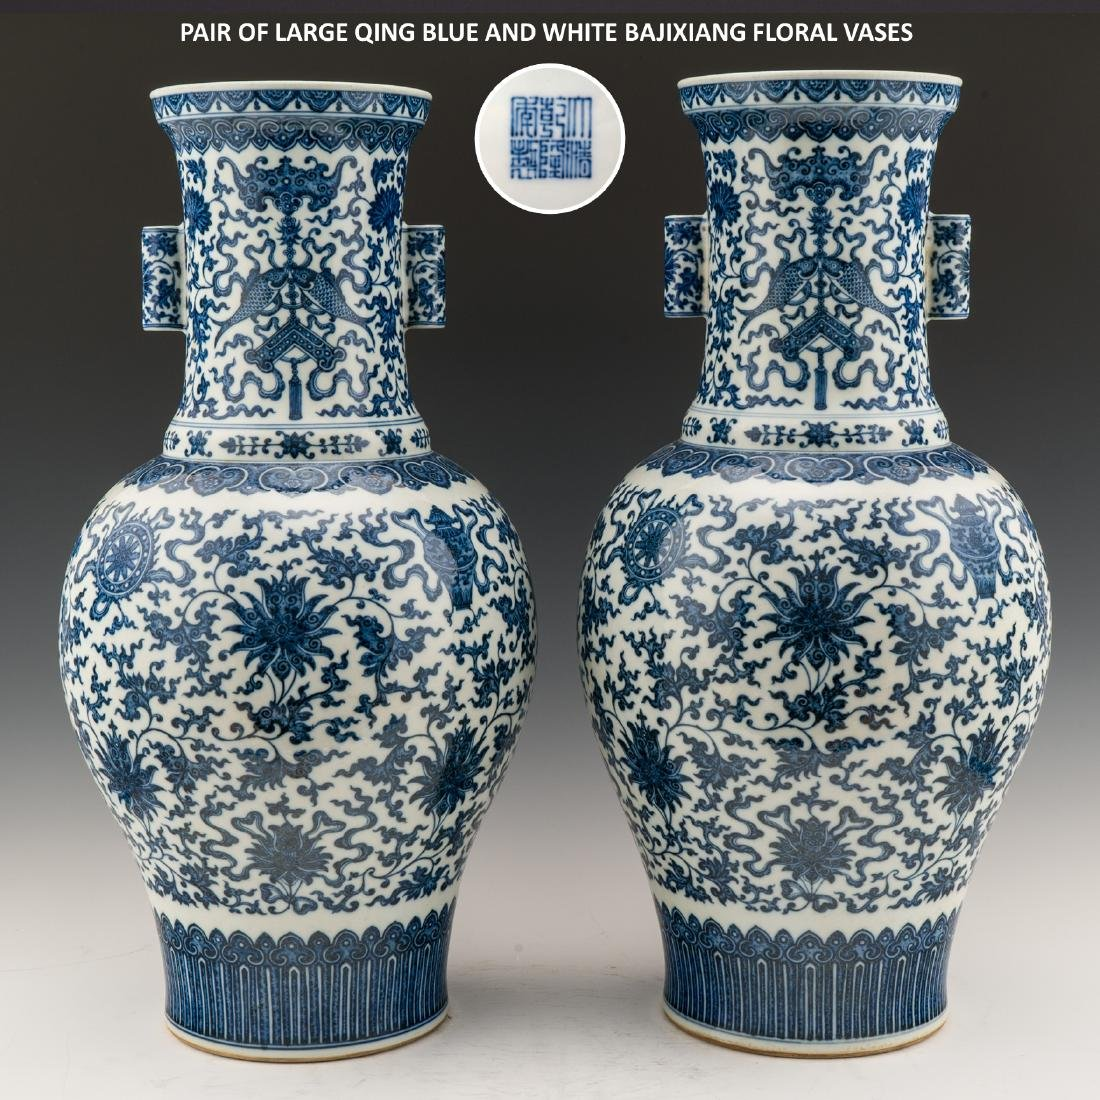 PAIR OF LARGE QING BLUE & WHITE BAJIXIANG FLORAL VASES